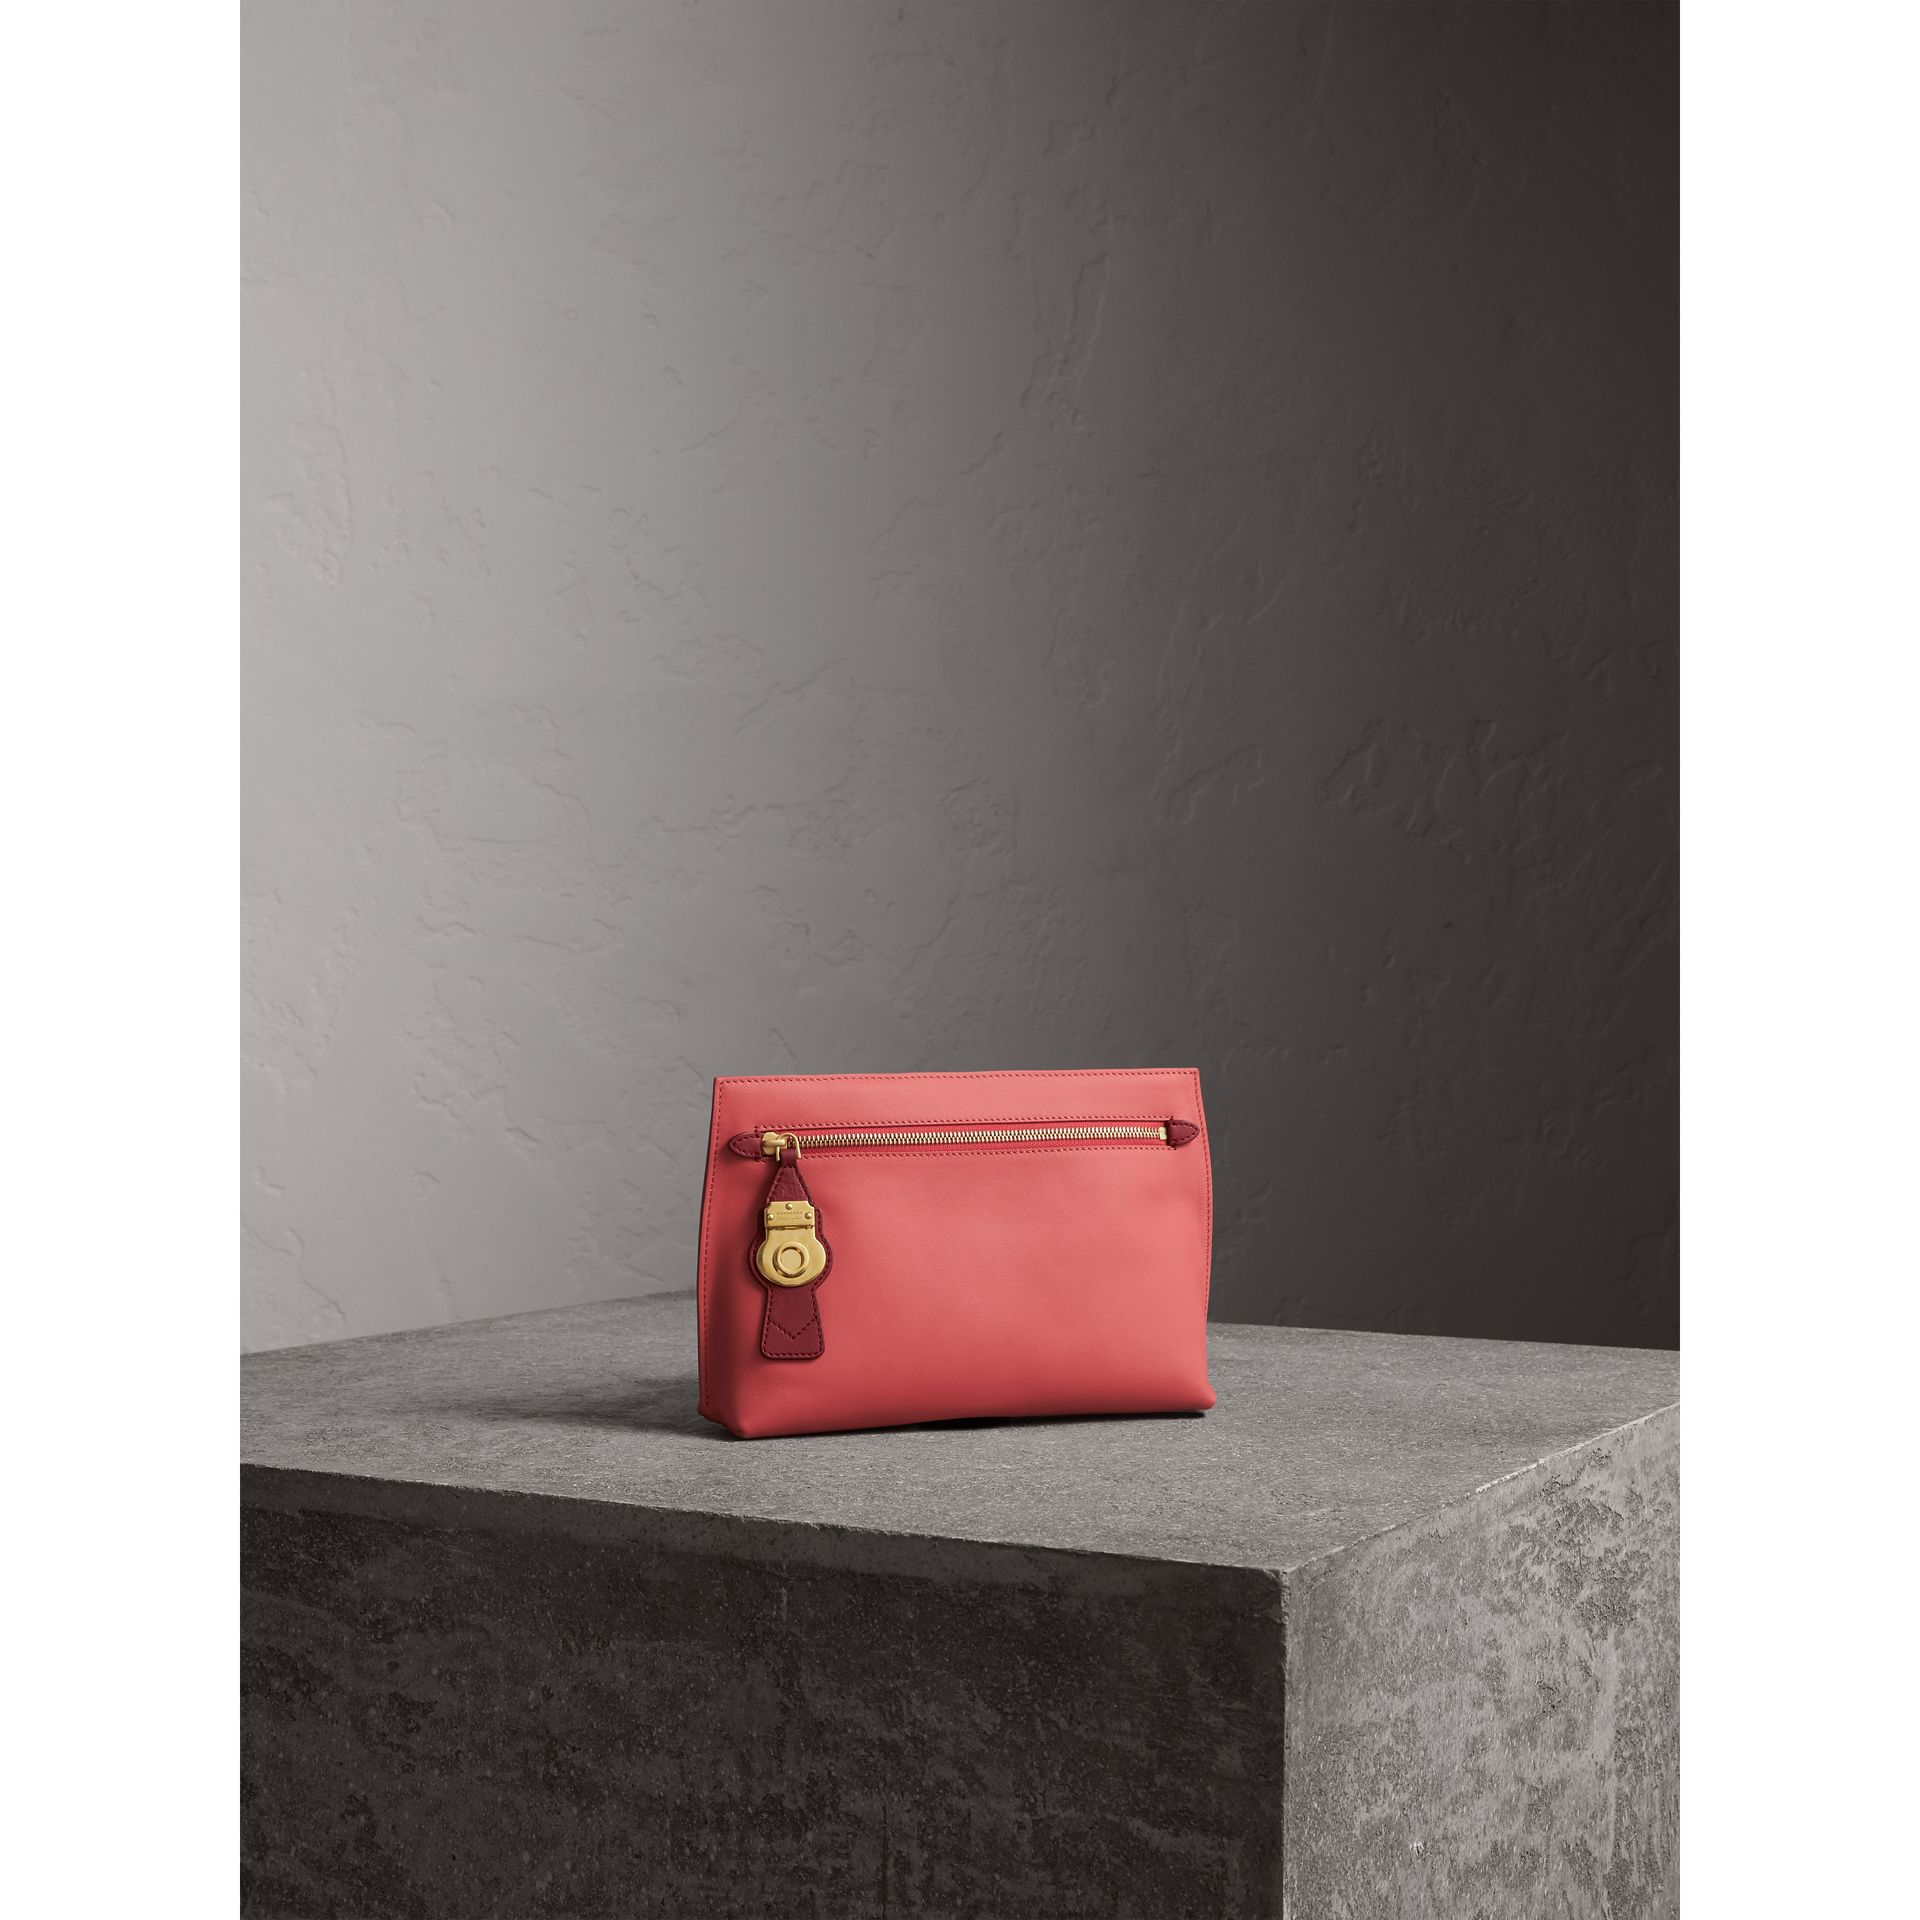 Two-tone Trench Leather Wristlet Pouch in Blossom Pink/antique Red - Women | Burberry United States - gallery image 6